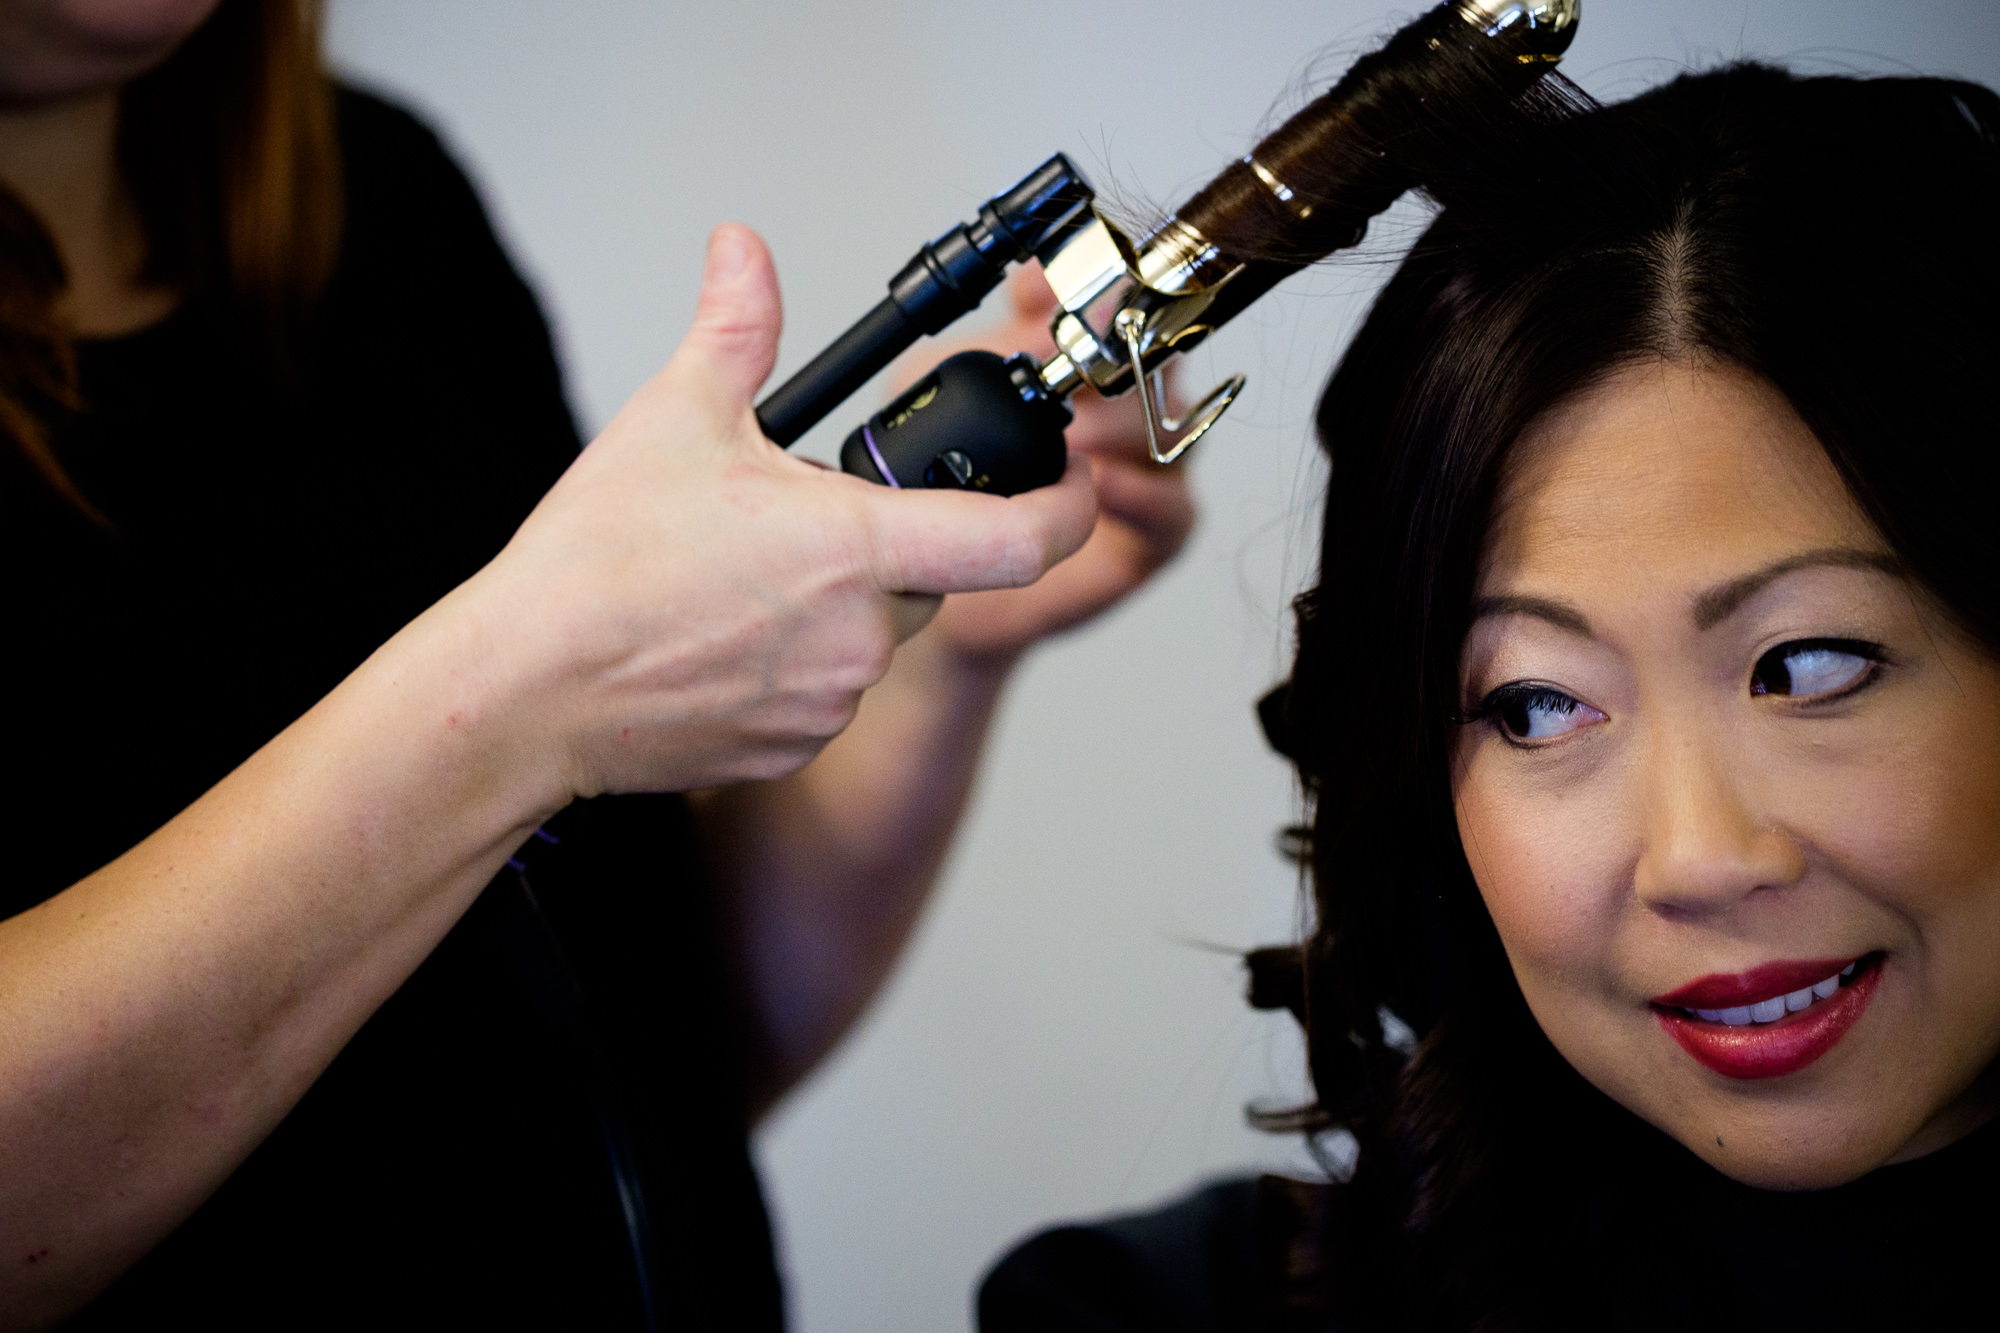 A bridesmaid has her hair done before the wedding.